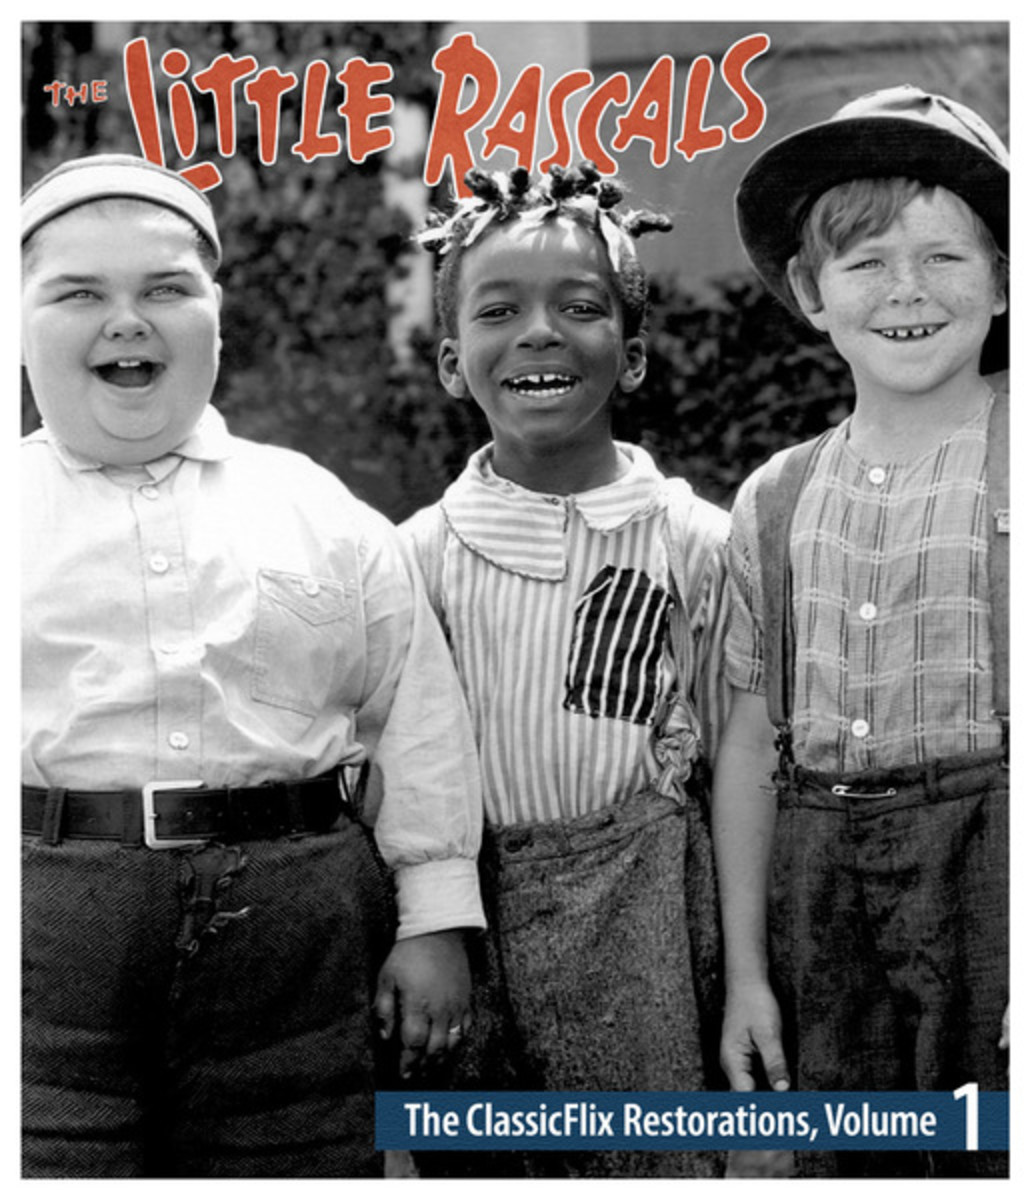 the-little-rascals-the-classicflix-restorations-vol-1-blu-ray-review